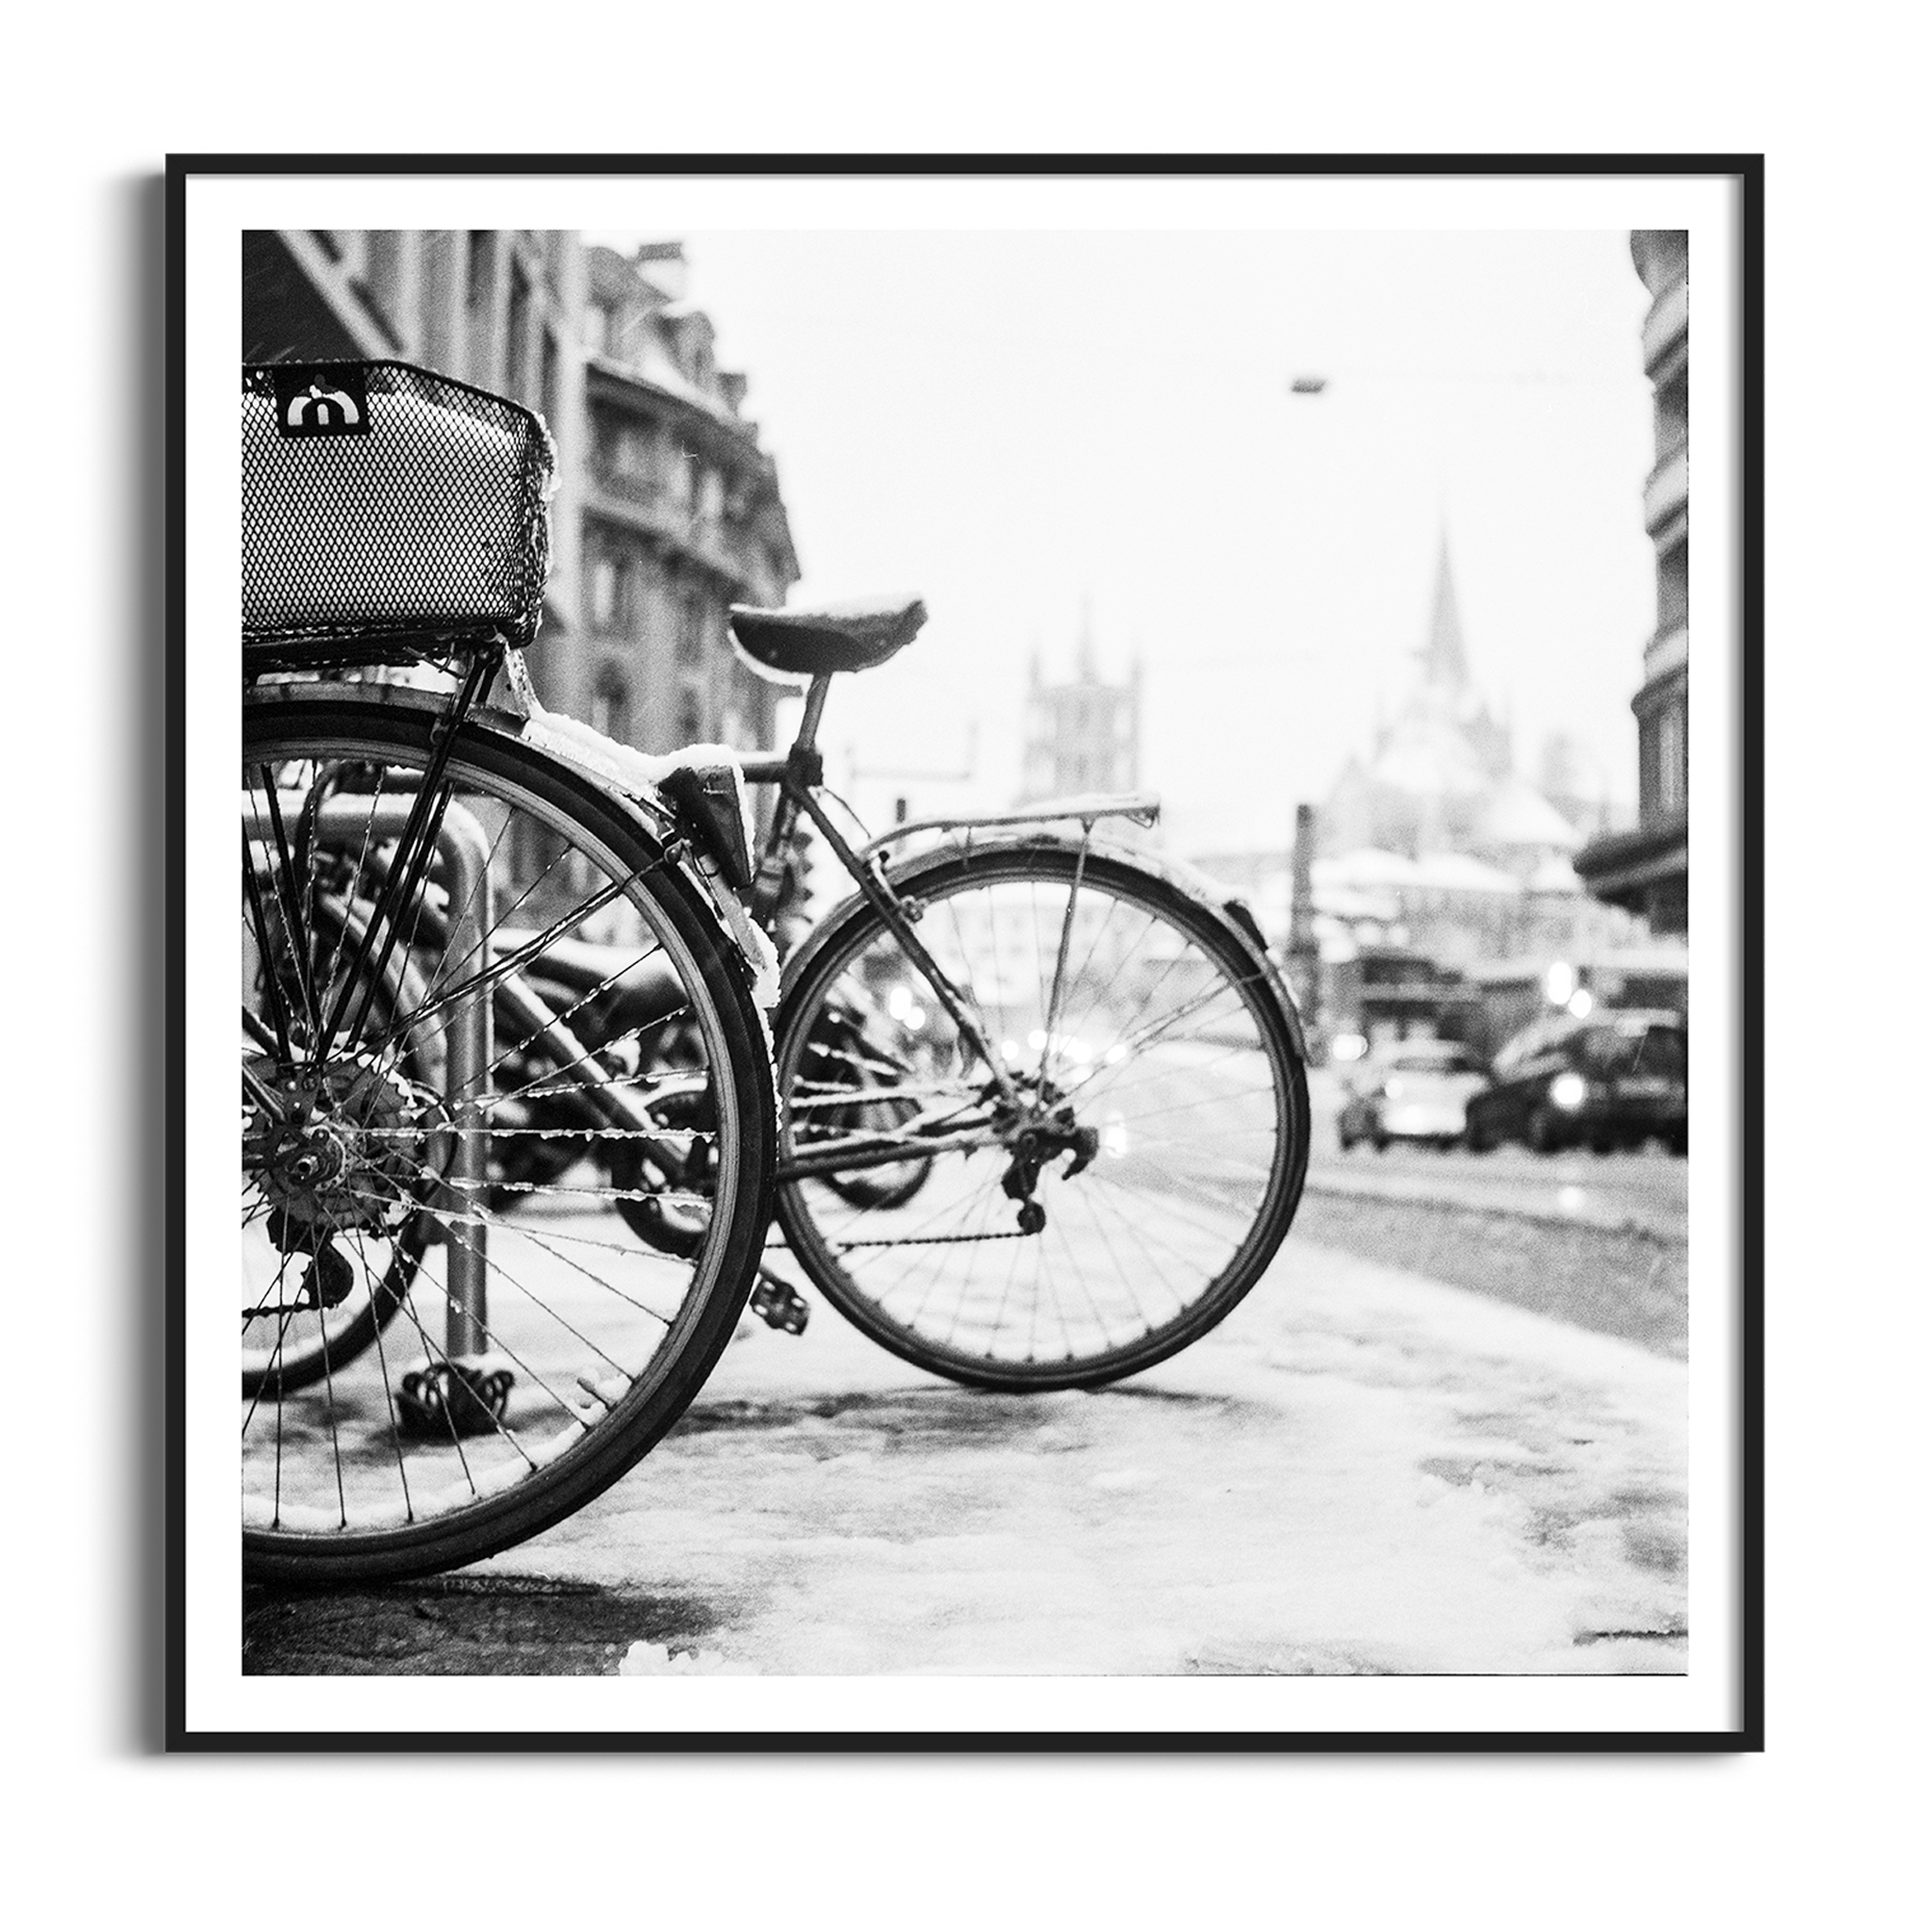 lausanne bicycles in snow black frame with border